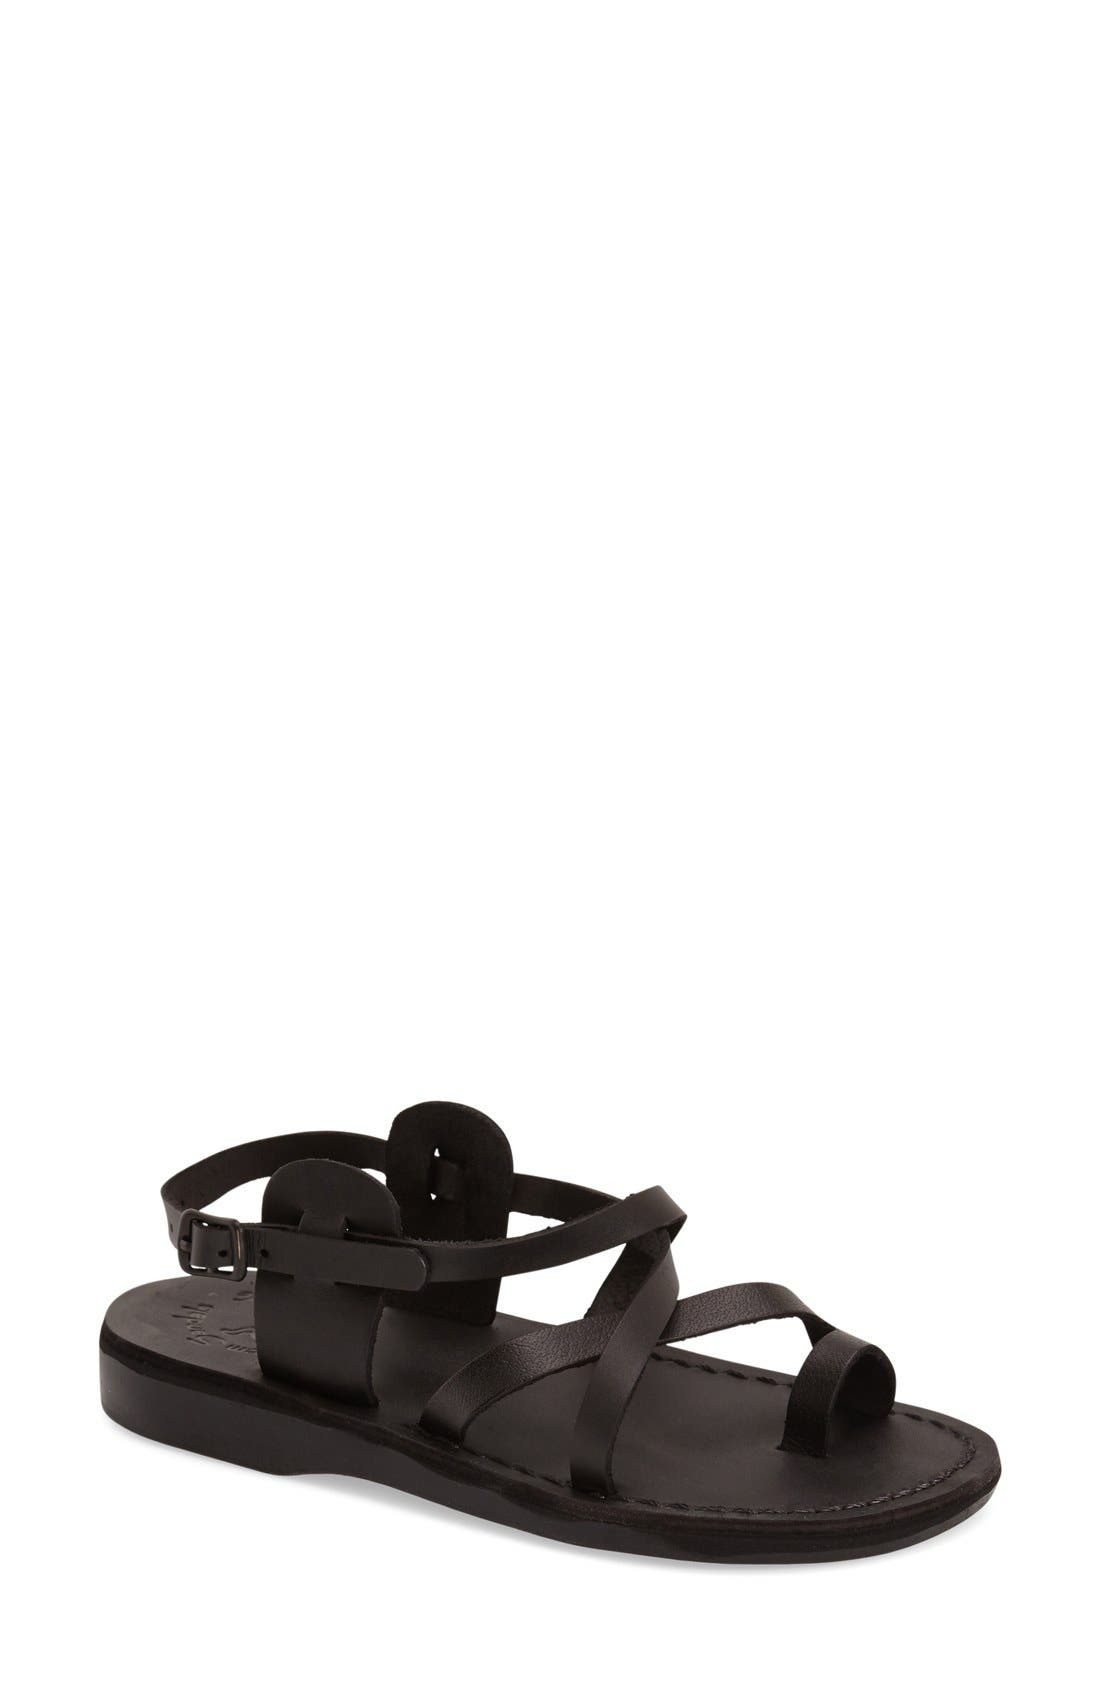 'The Good Shepard' Strappy Sandal,                         Main,                         color, Black Leather